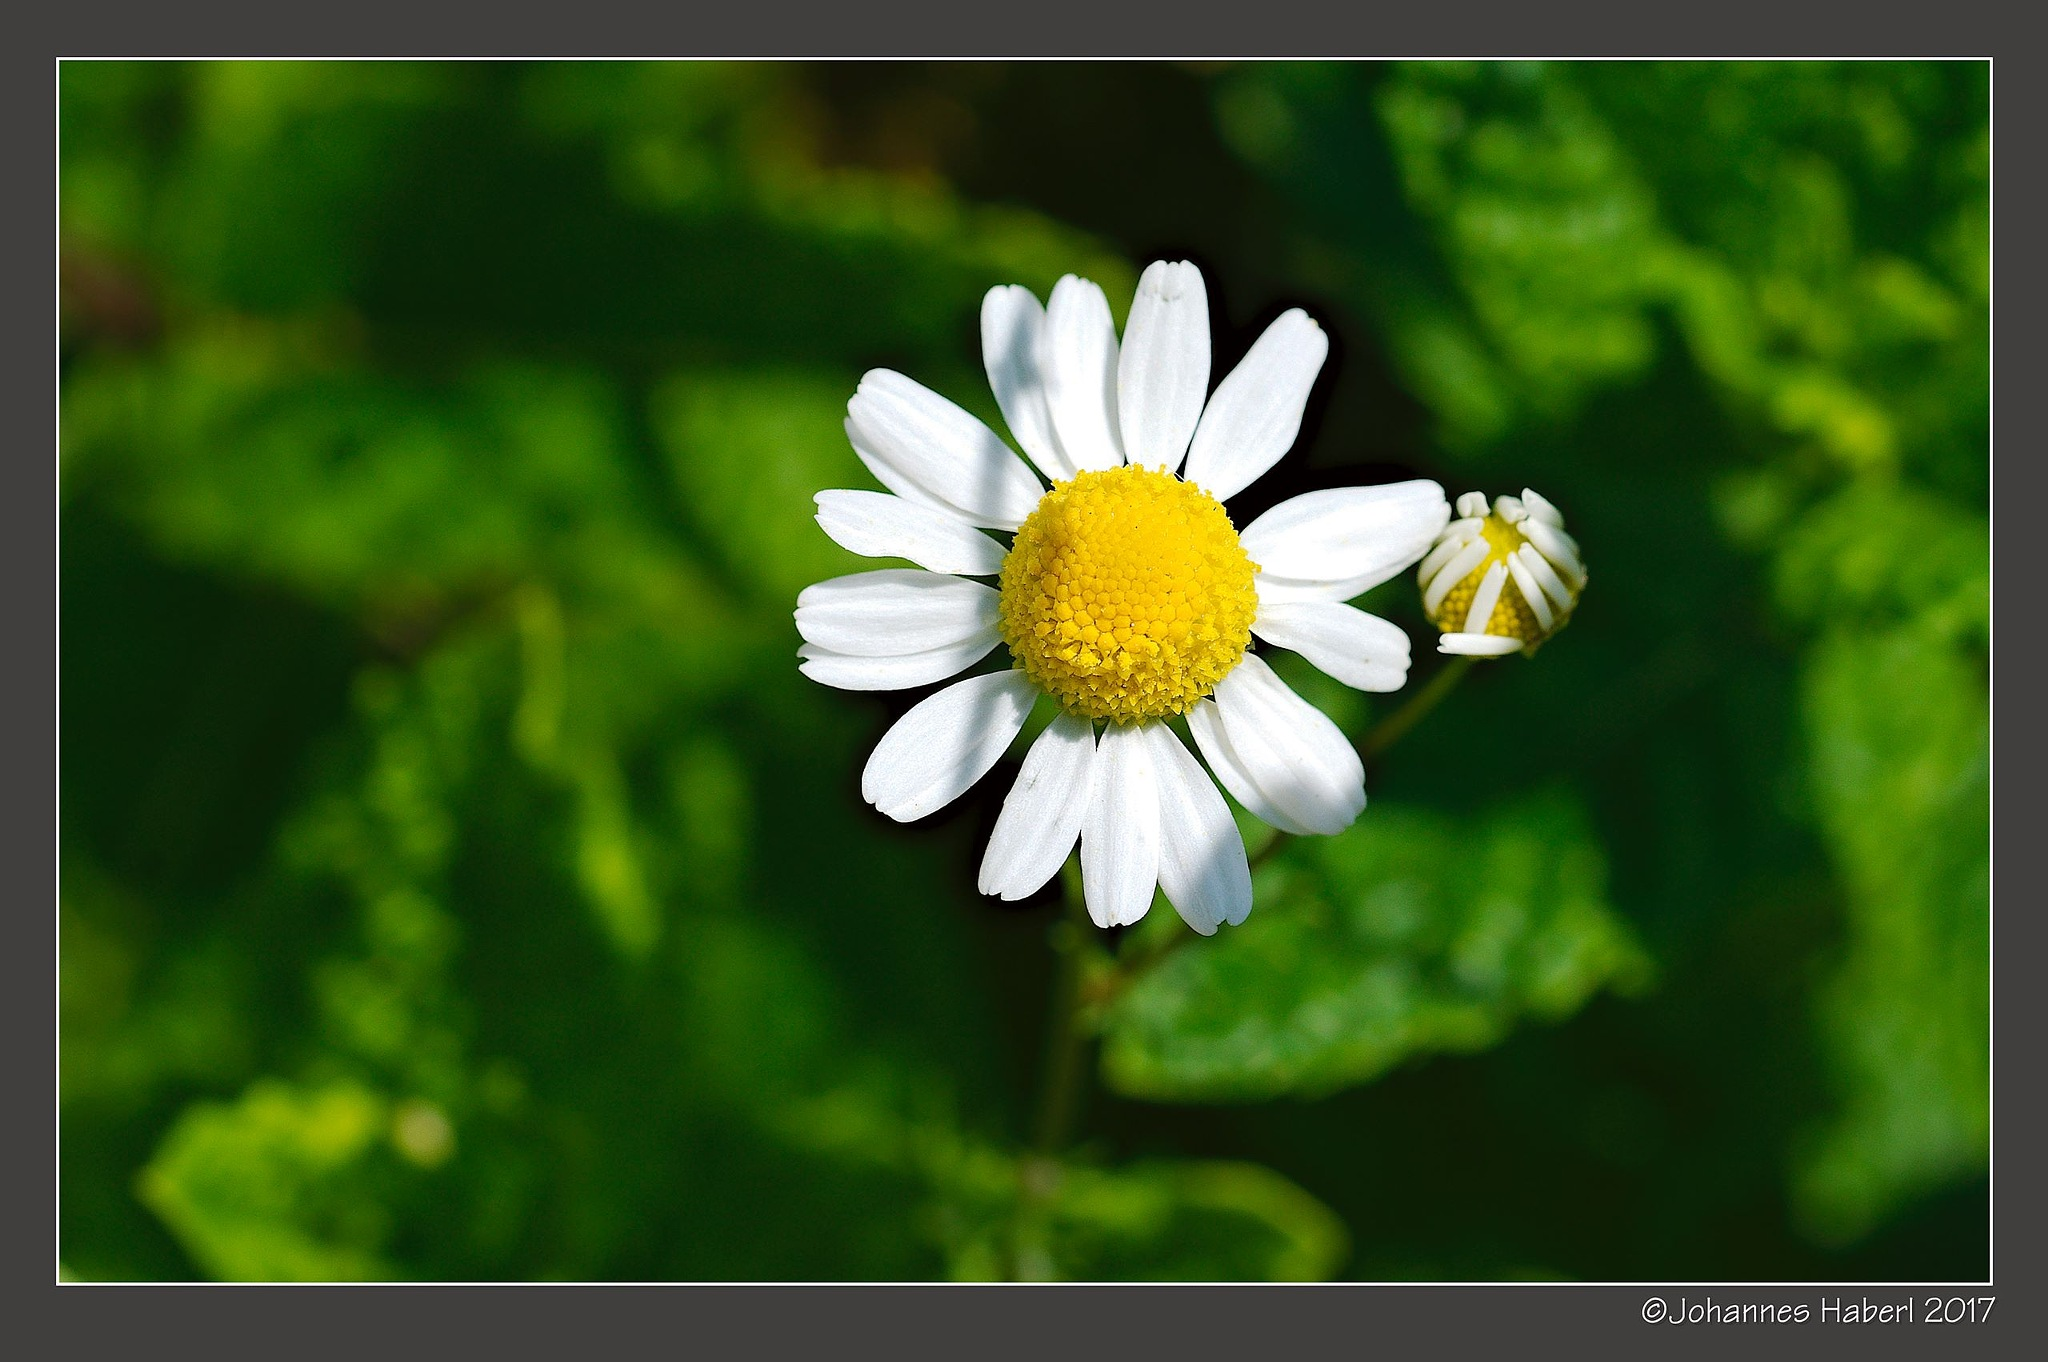 camomile blossom and bud by Johannes Haberl